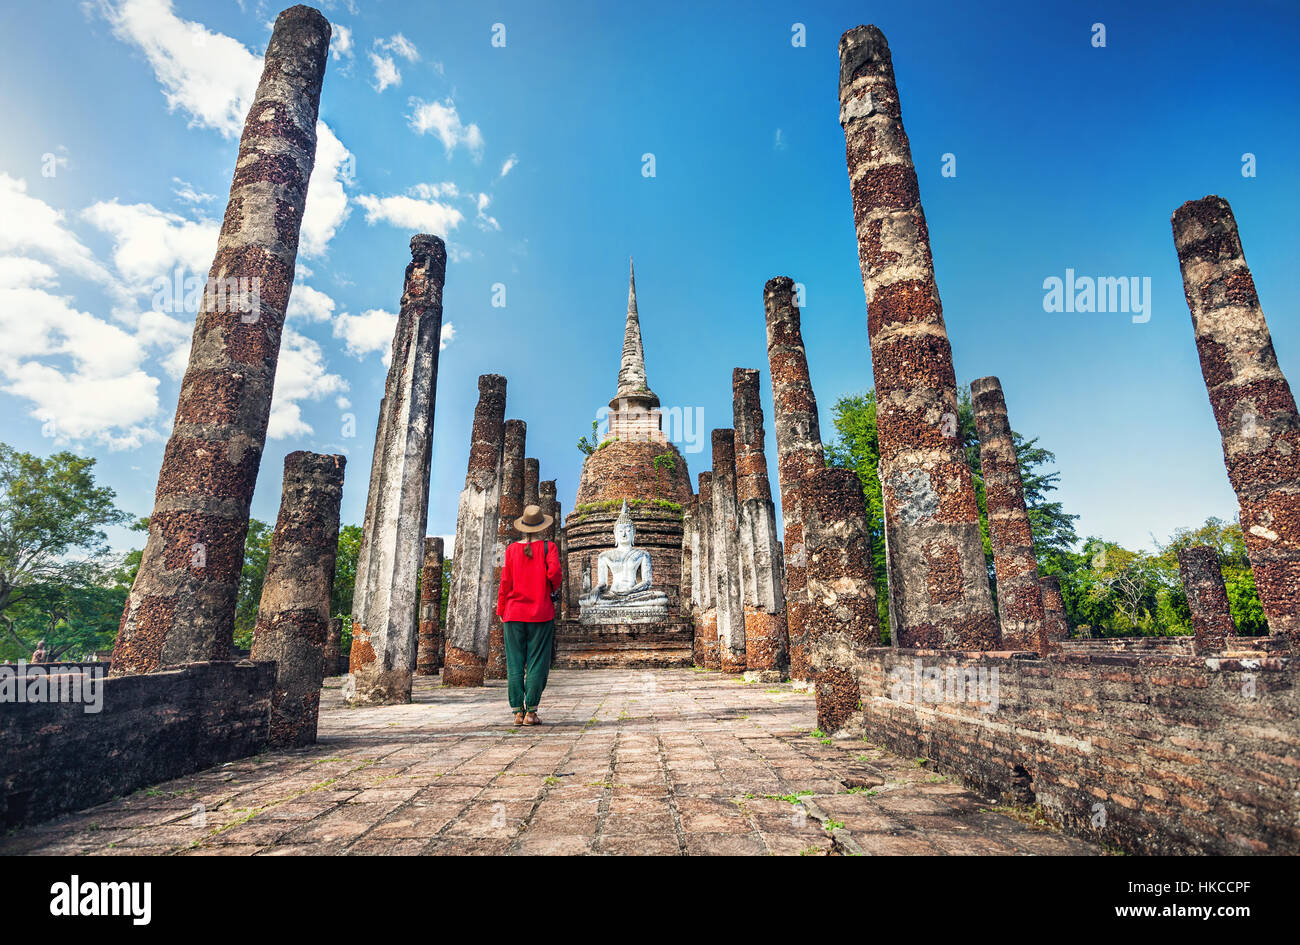 Tourist Woman in red costume looking at ancient Buddha statue in Wat Sa Si of Sukhothai Historical Park, Thailand - Stock Image